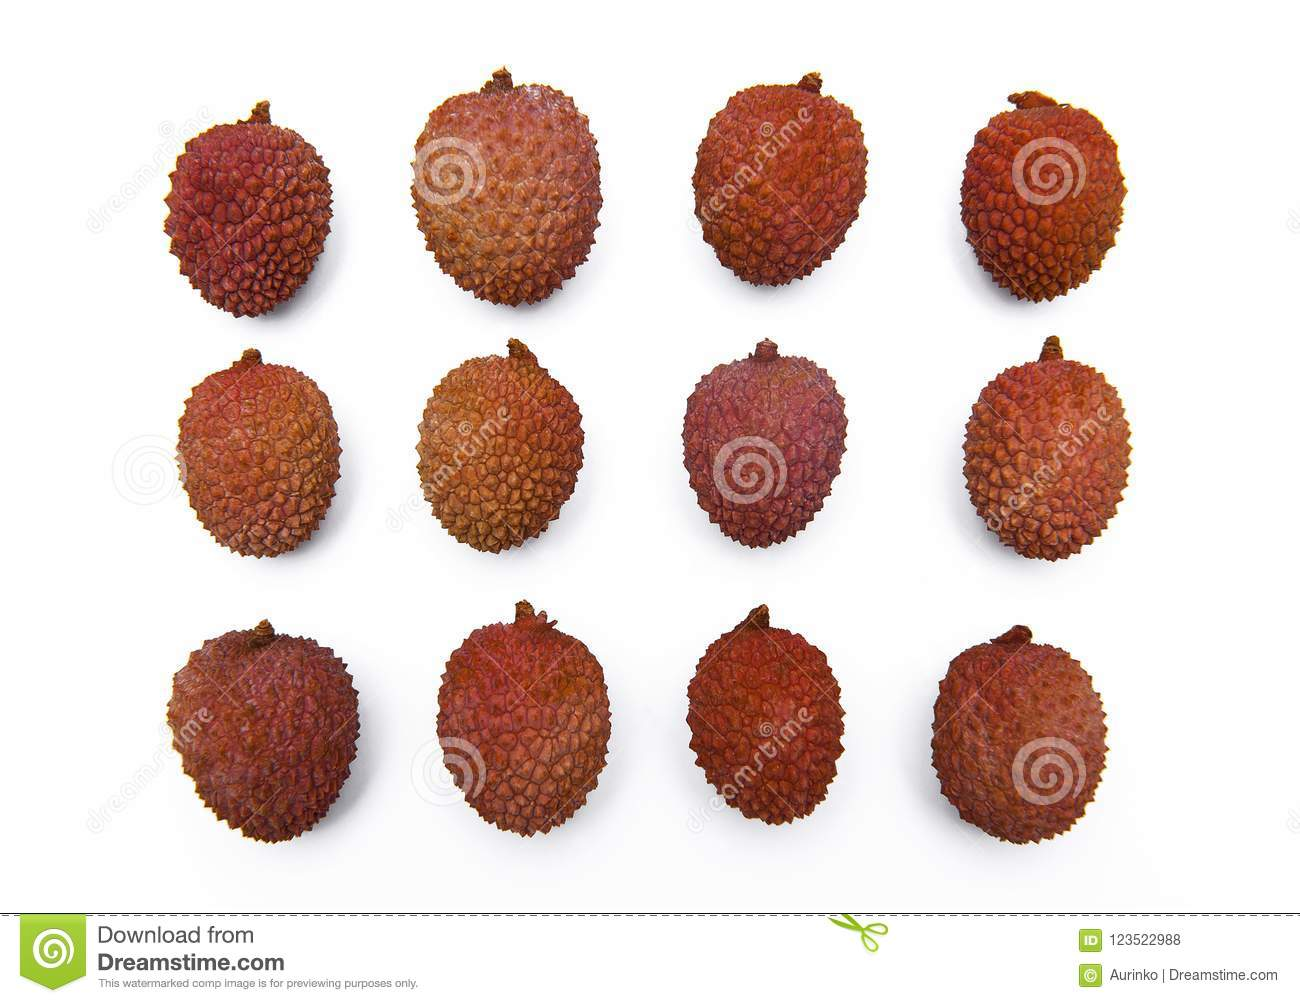 Lychee, Litchi fruits isolated on the white background